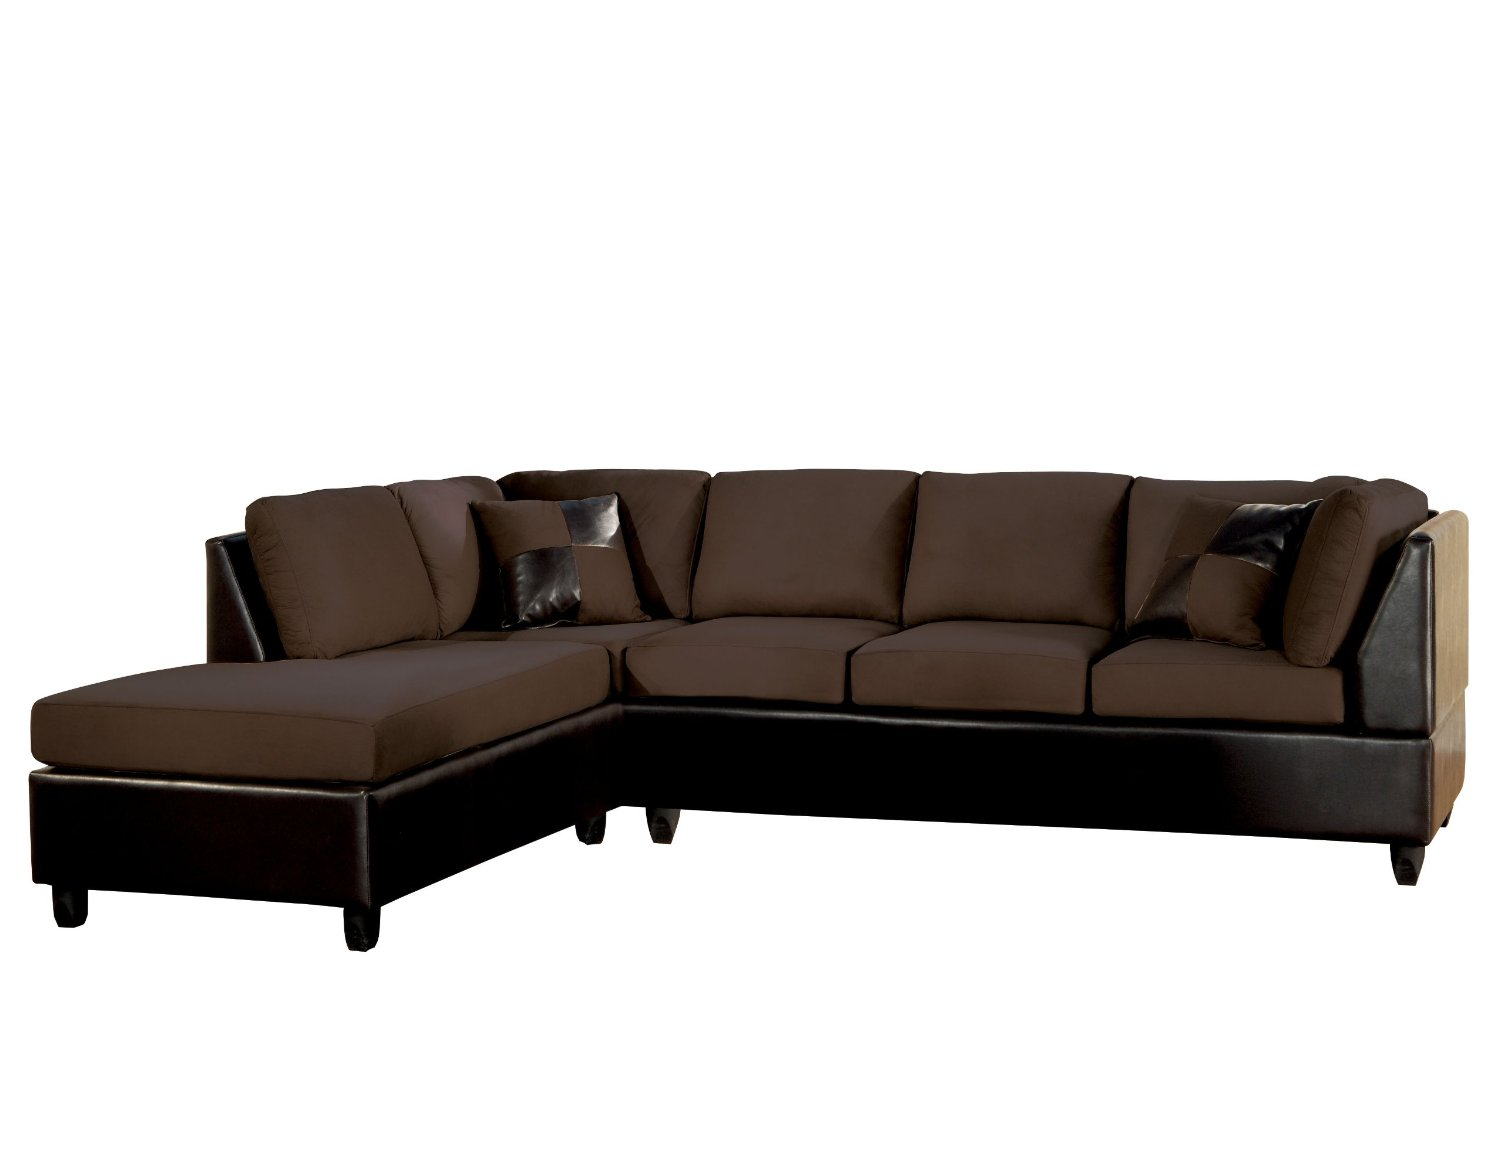 Curved Leather Sectional Sofa 2017 2018 Best Cars Reviews